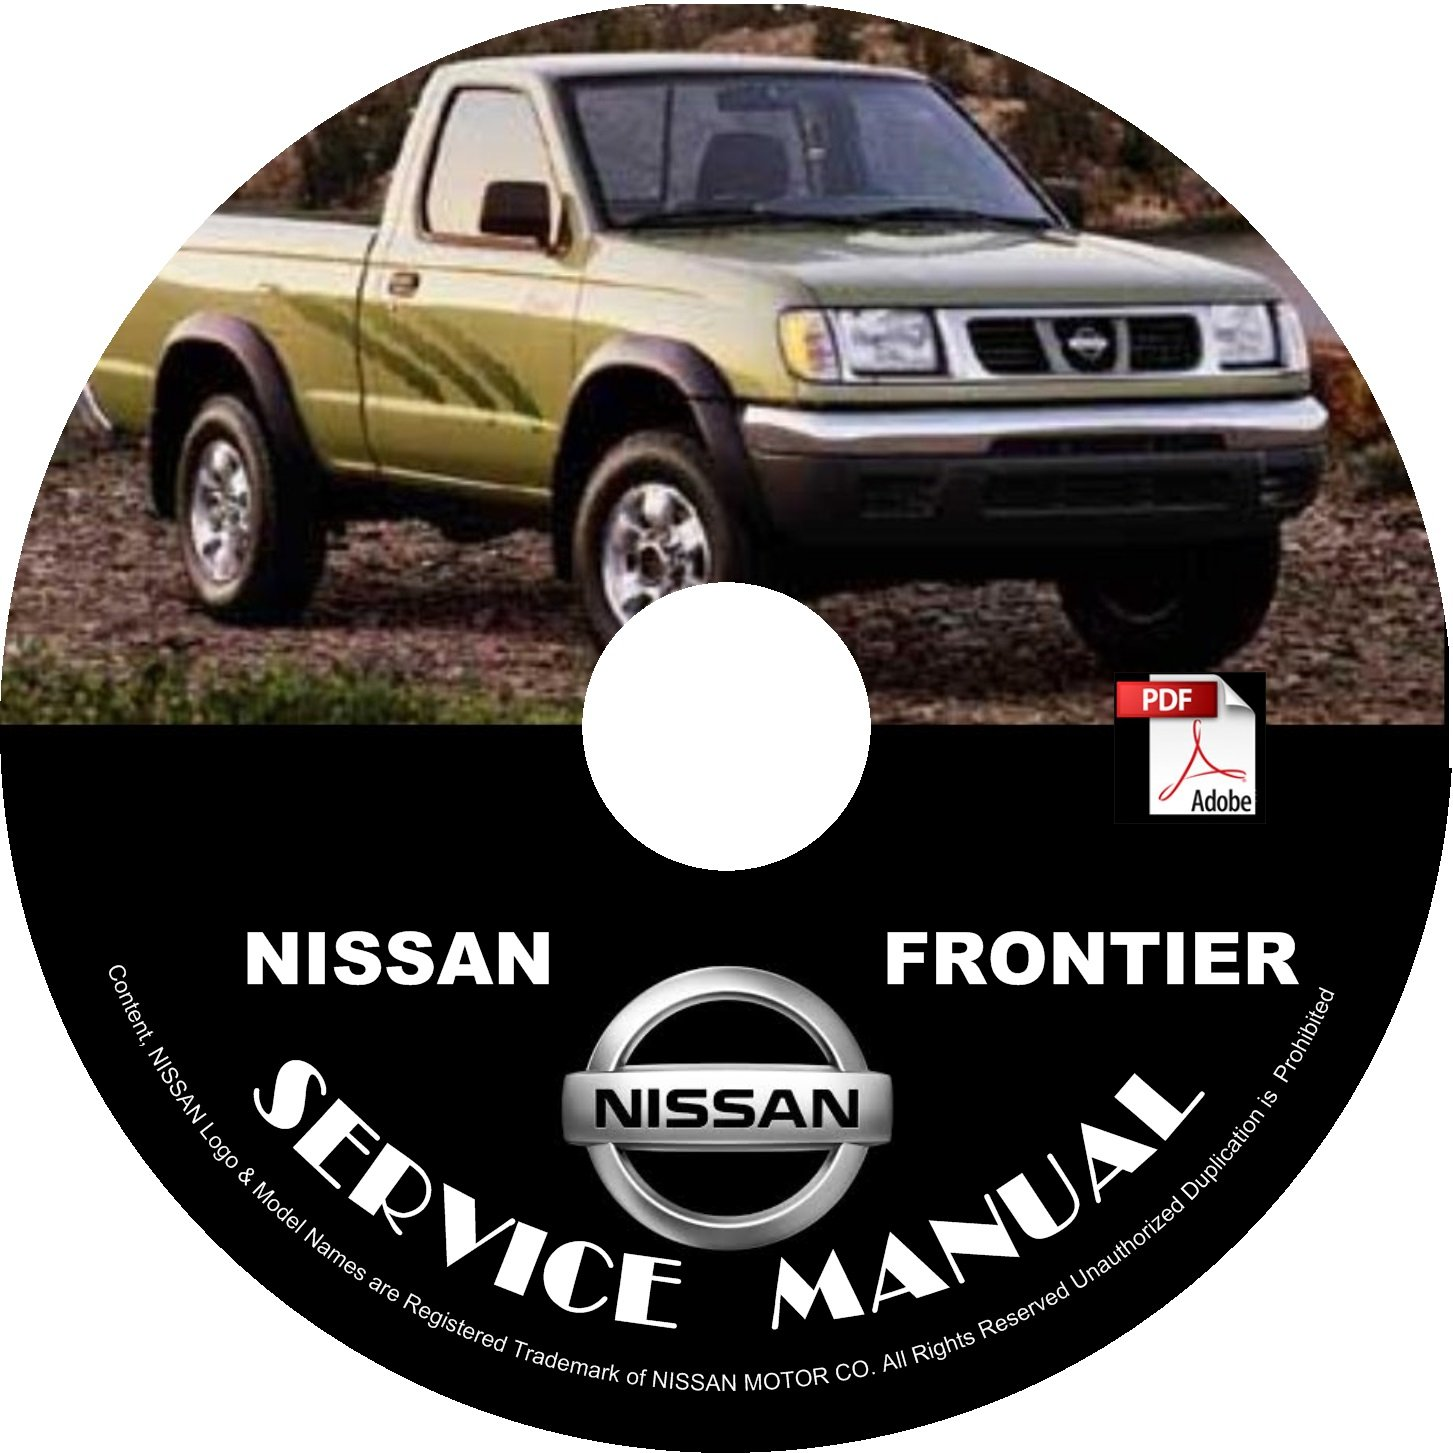 1998 Nissan Frontier Service Repair Shop Manual on CD